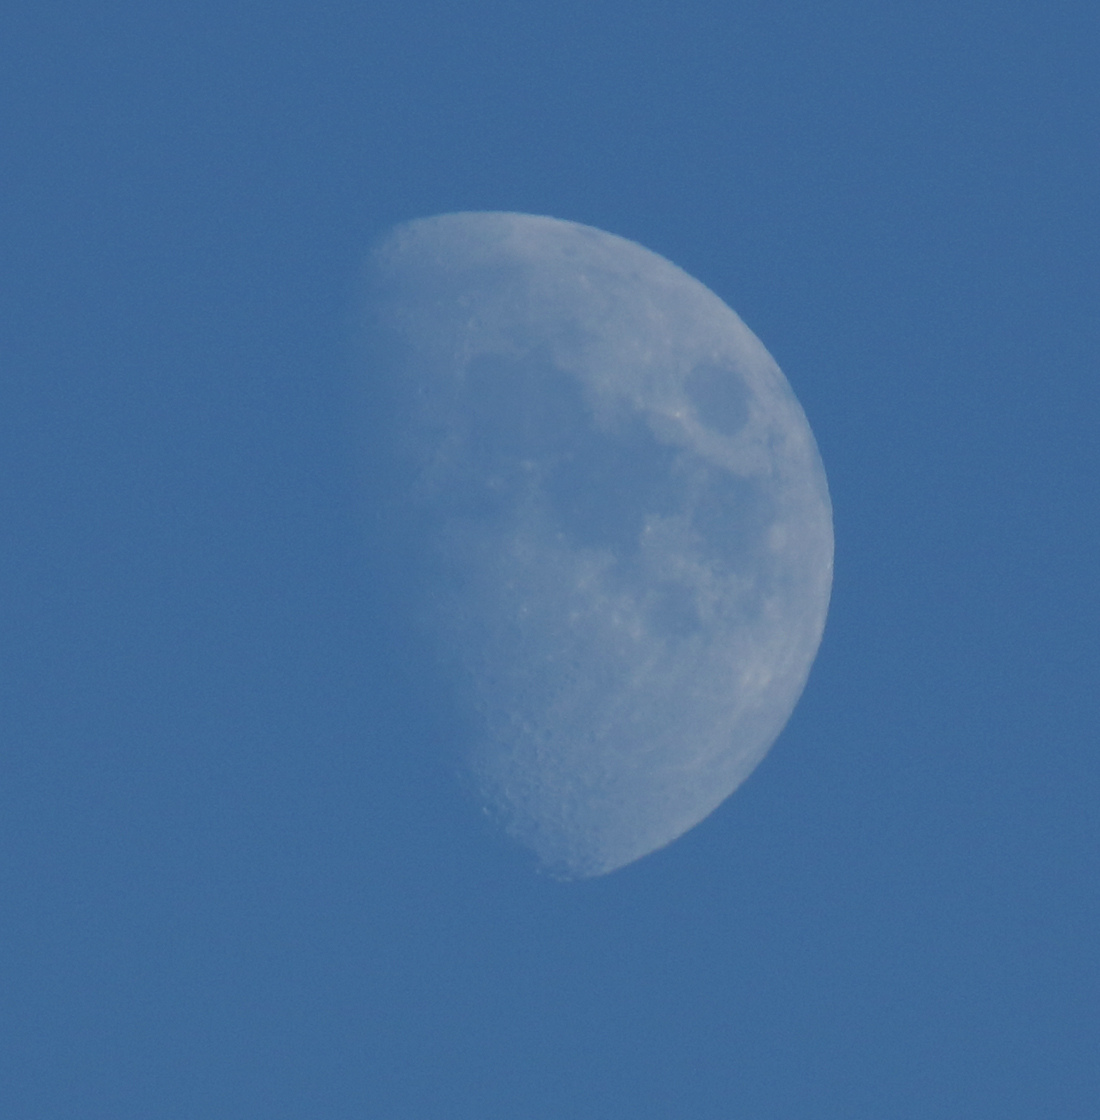 la lune le 07/10/2019 (42182 raw jpeg)